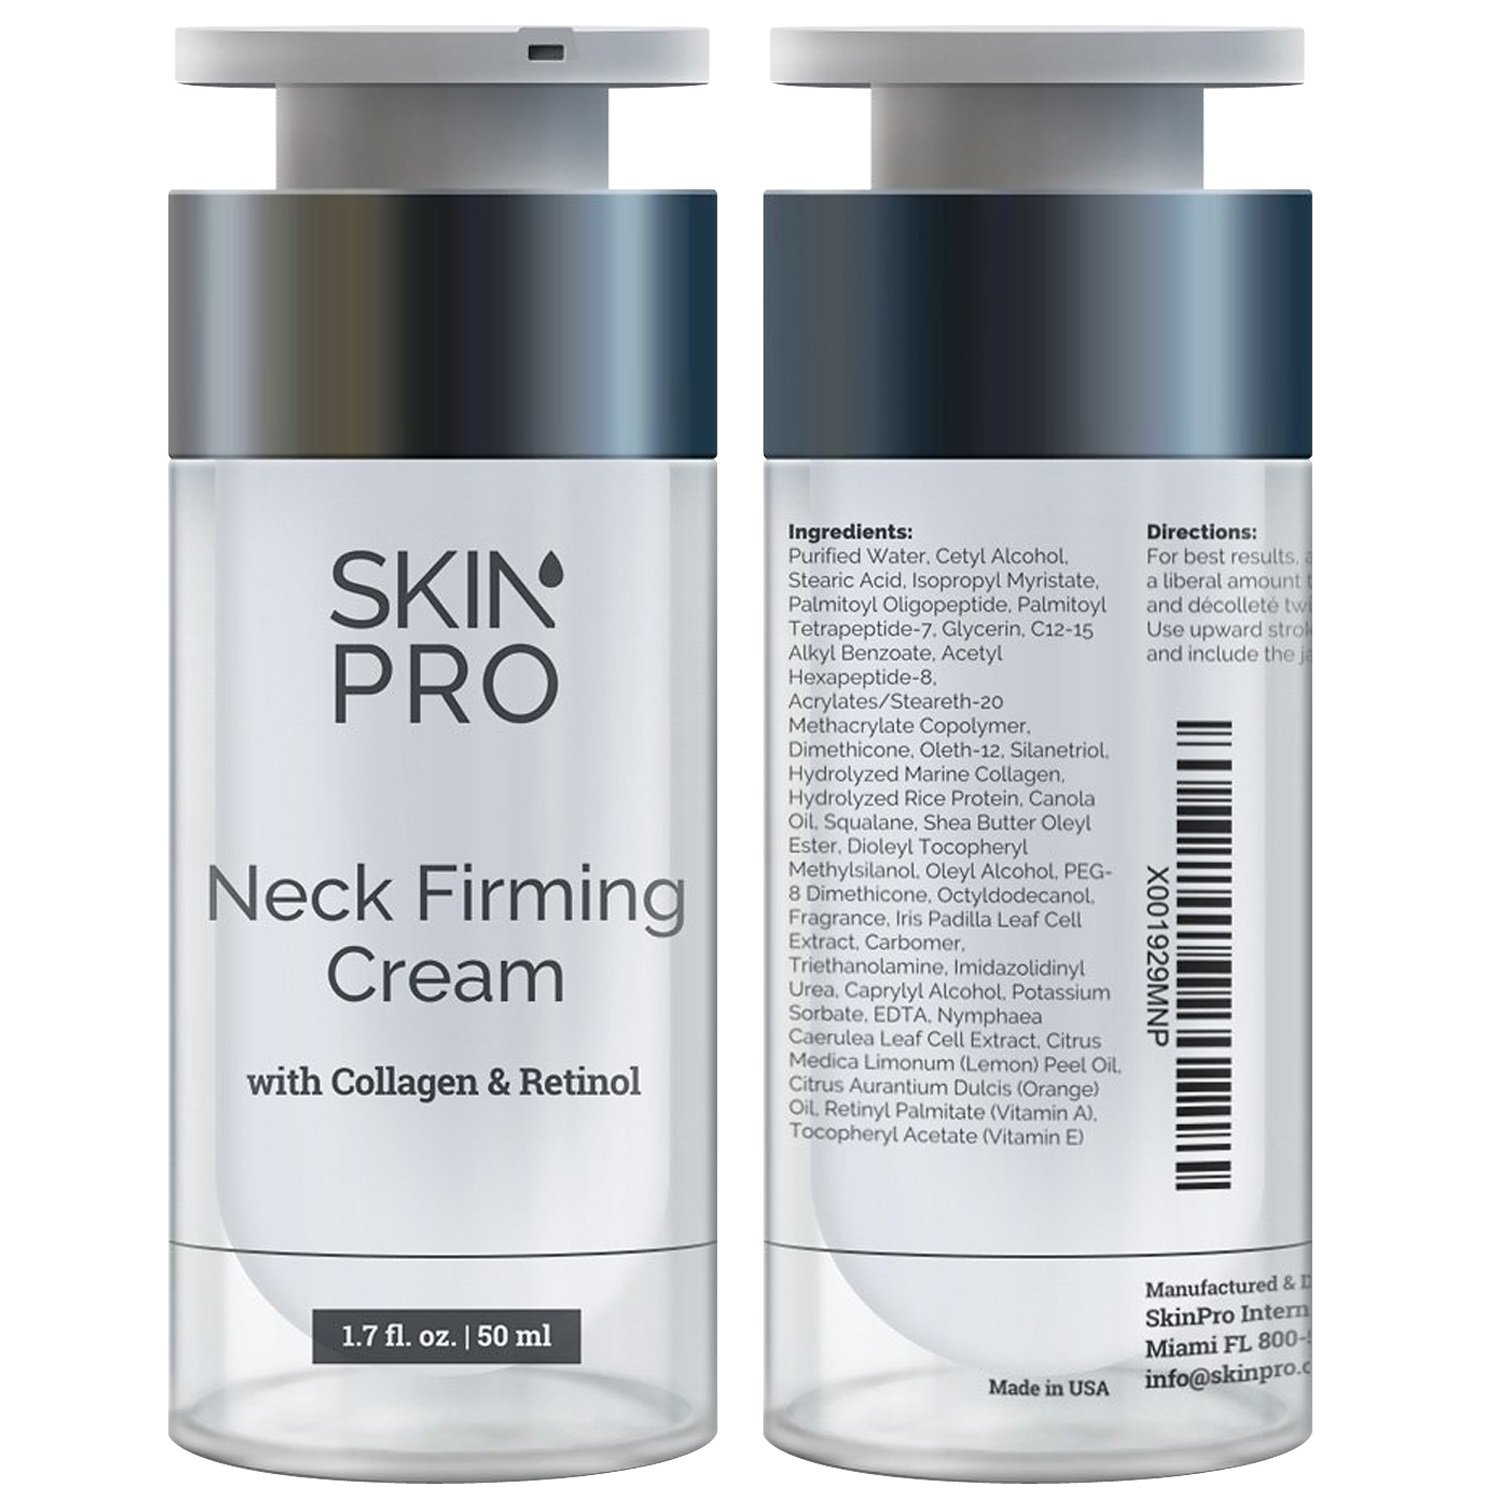 Neck Firming Cream - Anti Aging & Skin Tightening Serum by SkinPro – Age Defying – Made with Marine Collagen & Peptides – Contains Vitamin A & Retinol for Firm Skin – Paraben Free